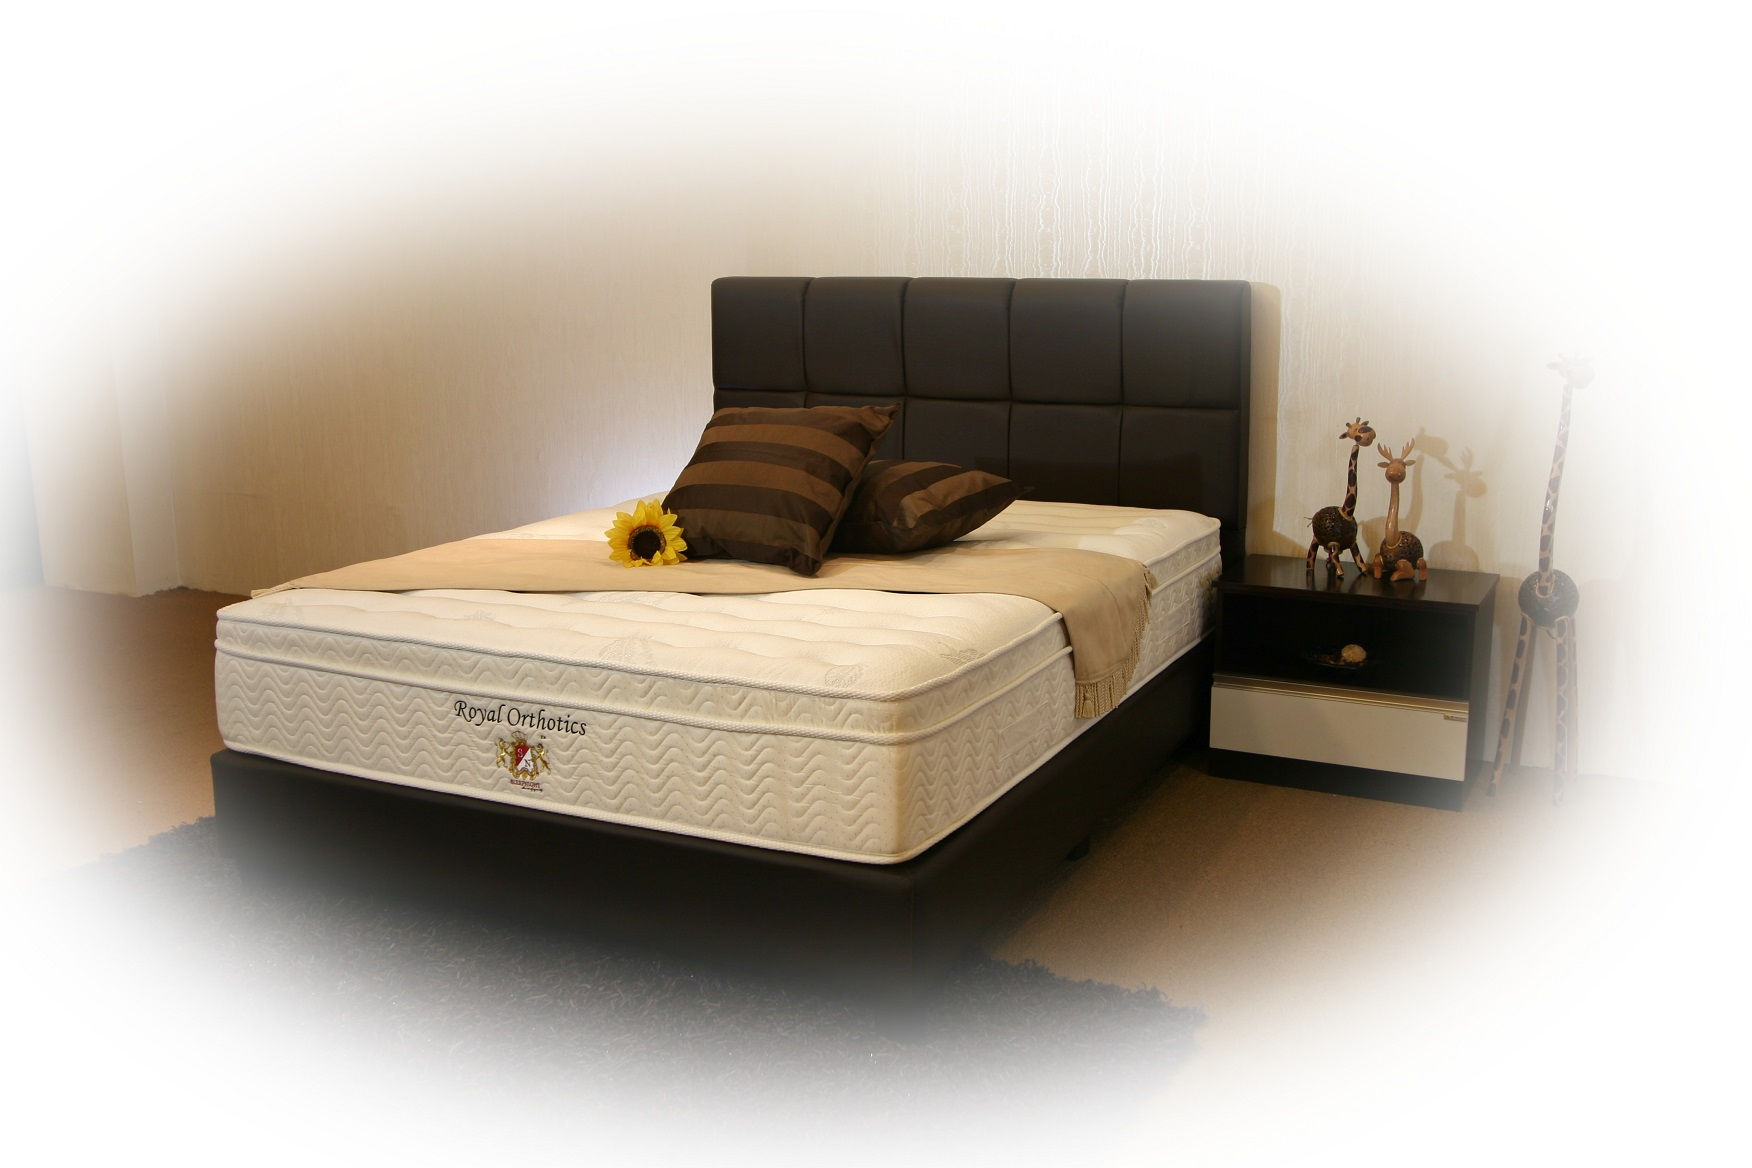 Royal Orthotics - Individual Pocketed Spring, Natural Latex Layer, Silver Infused Belgium Fabric Mattress